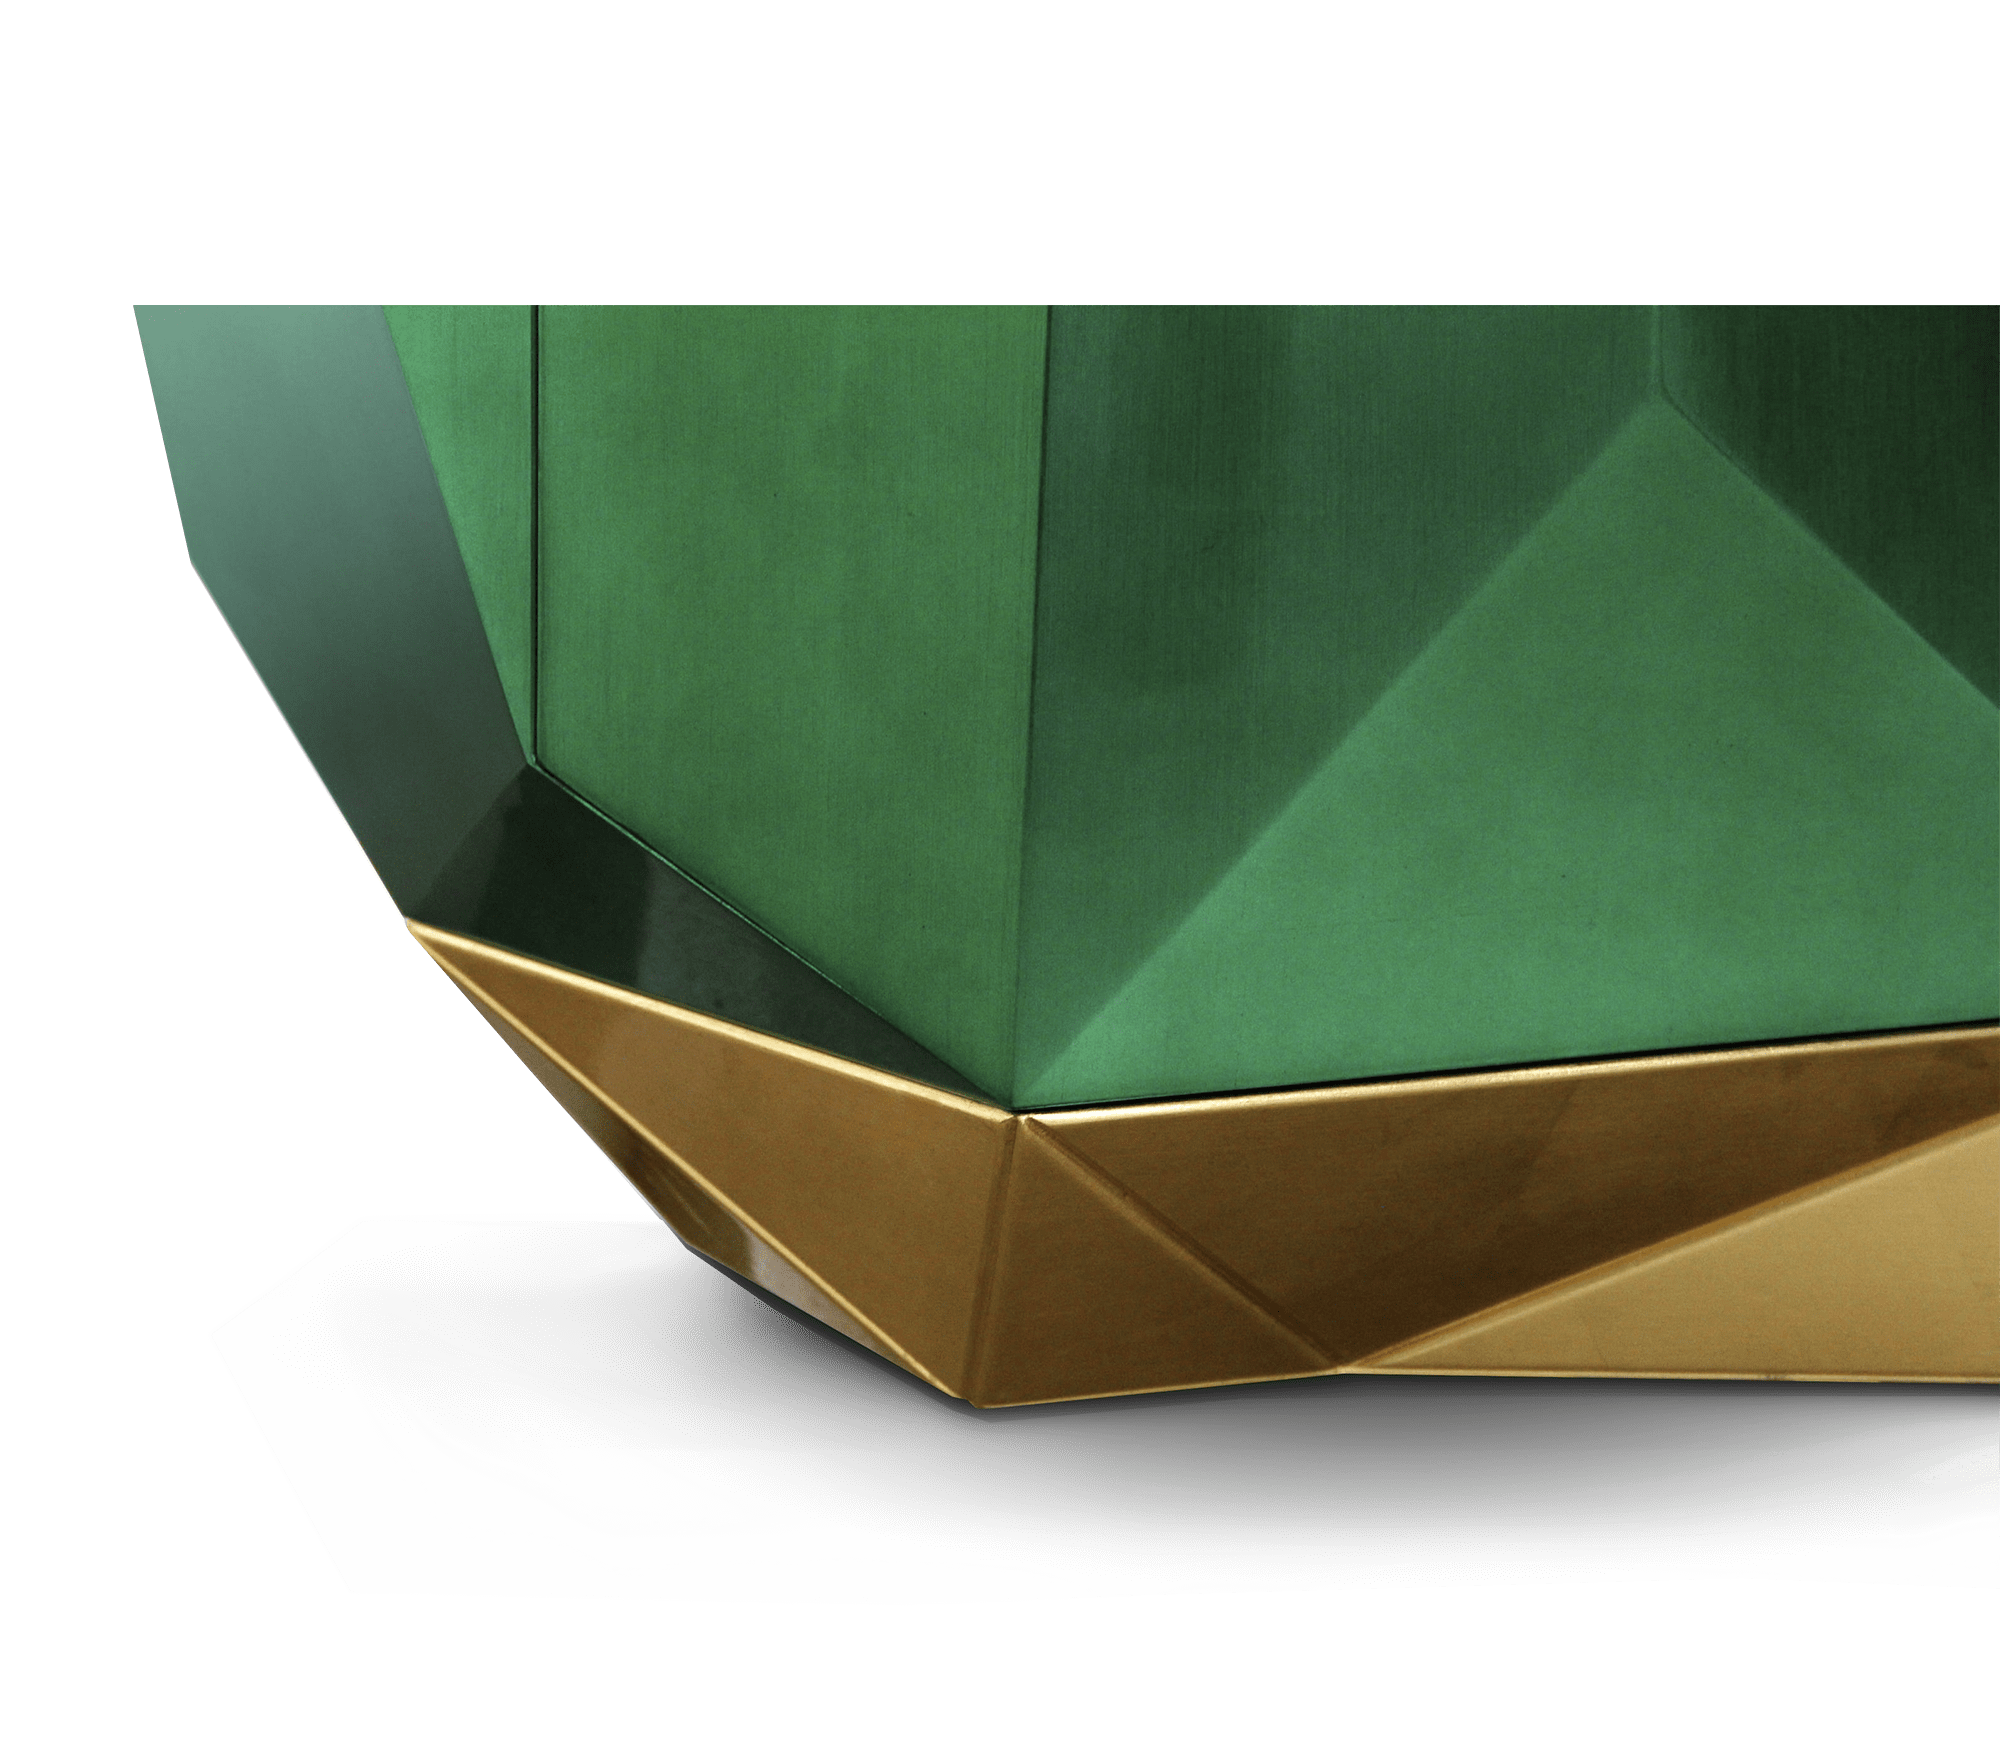 Diamond Emerald Sideboard by Boca do Lobo